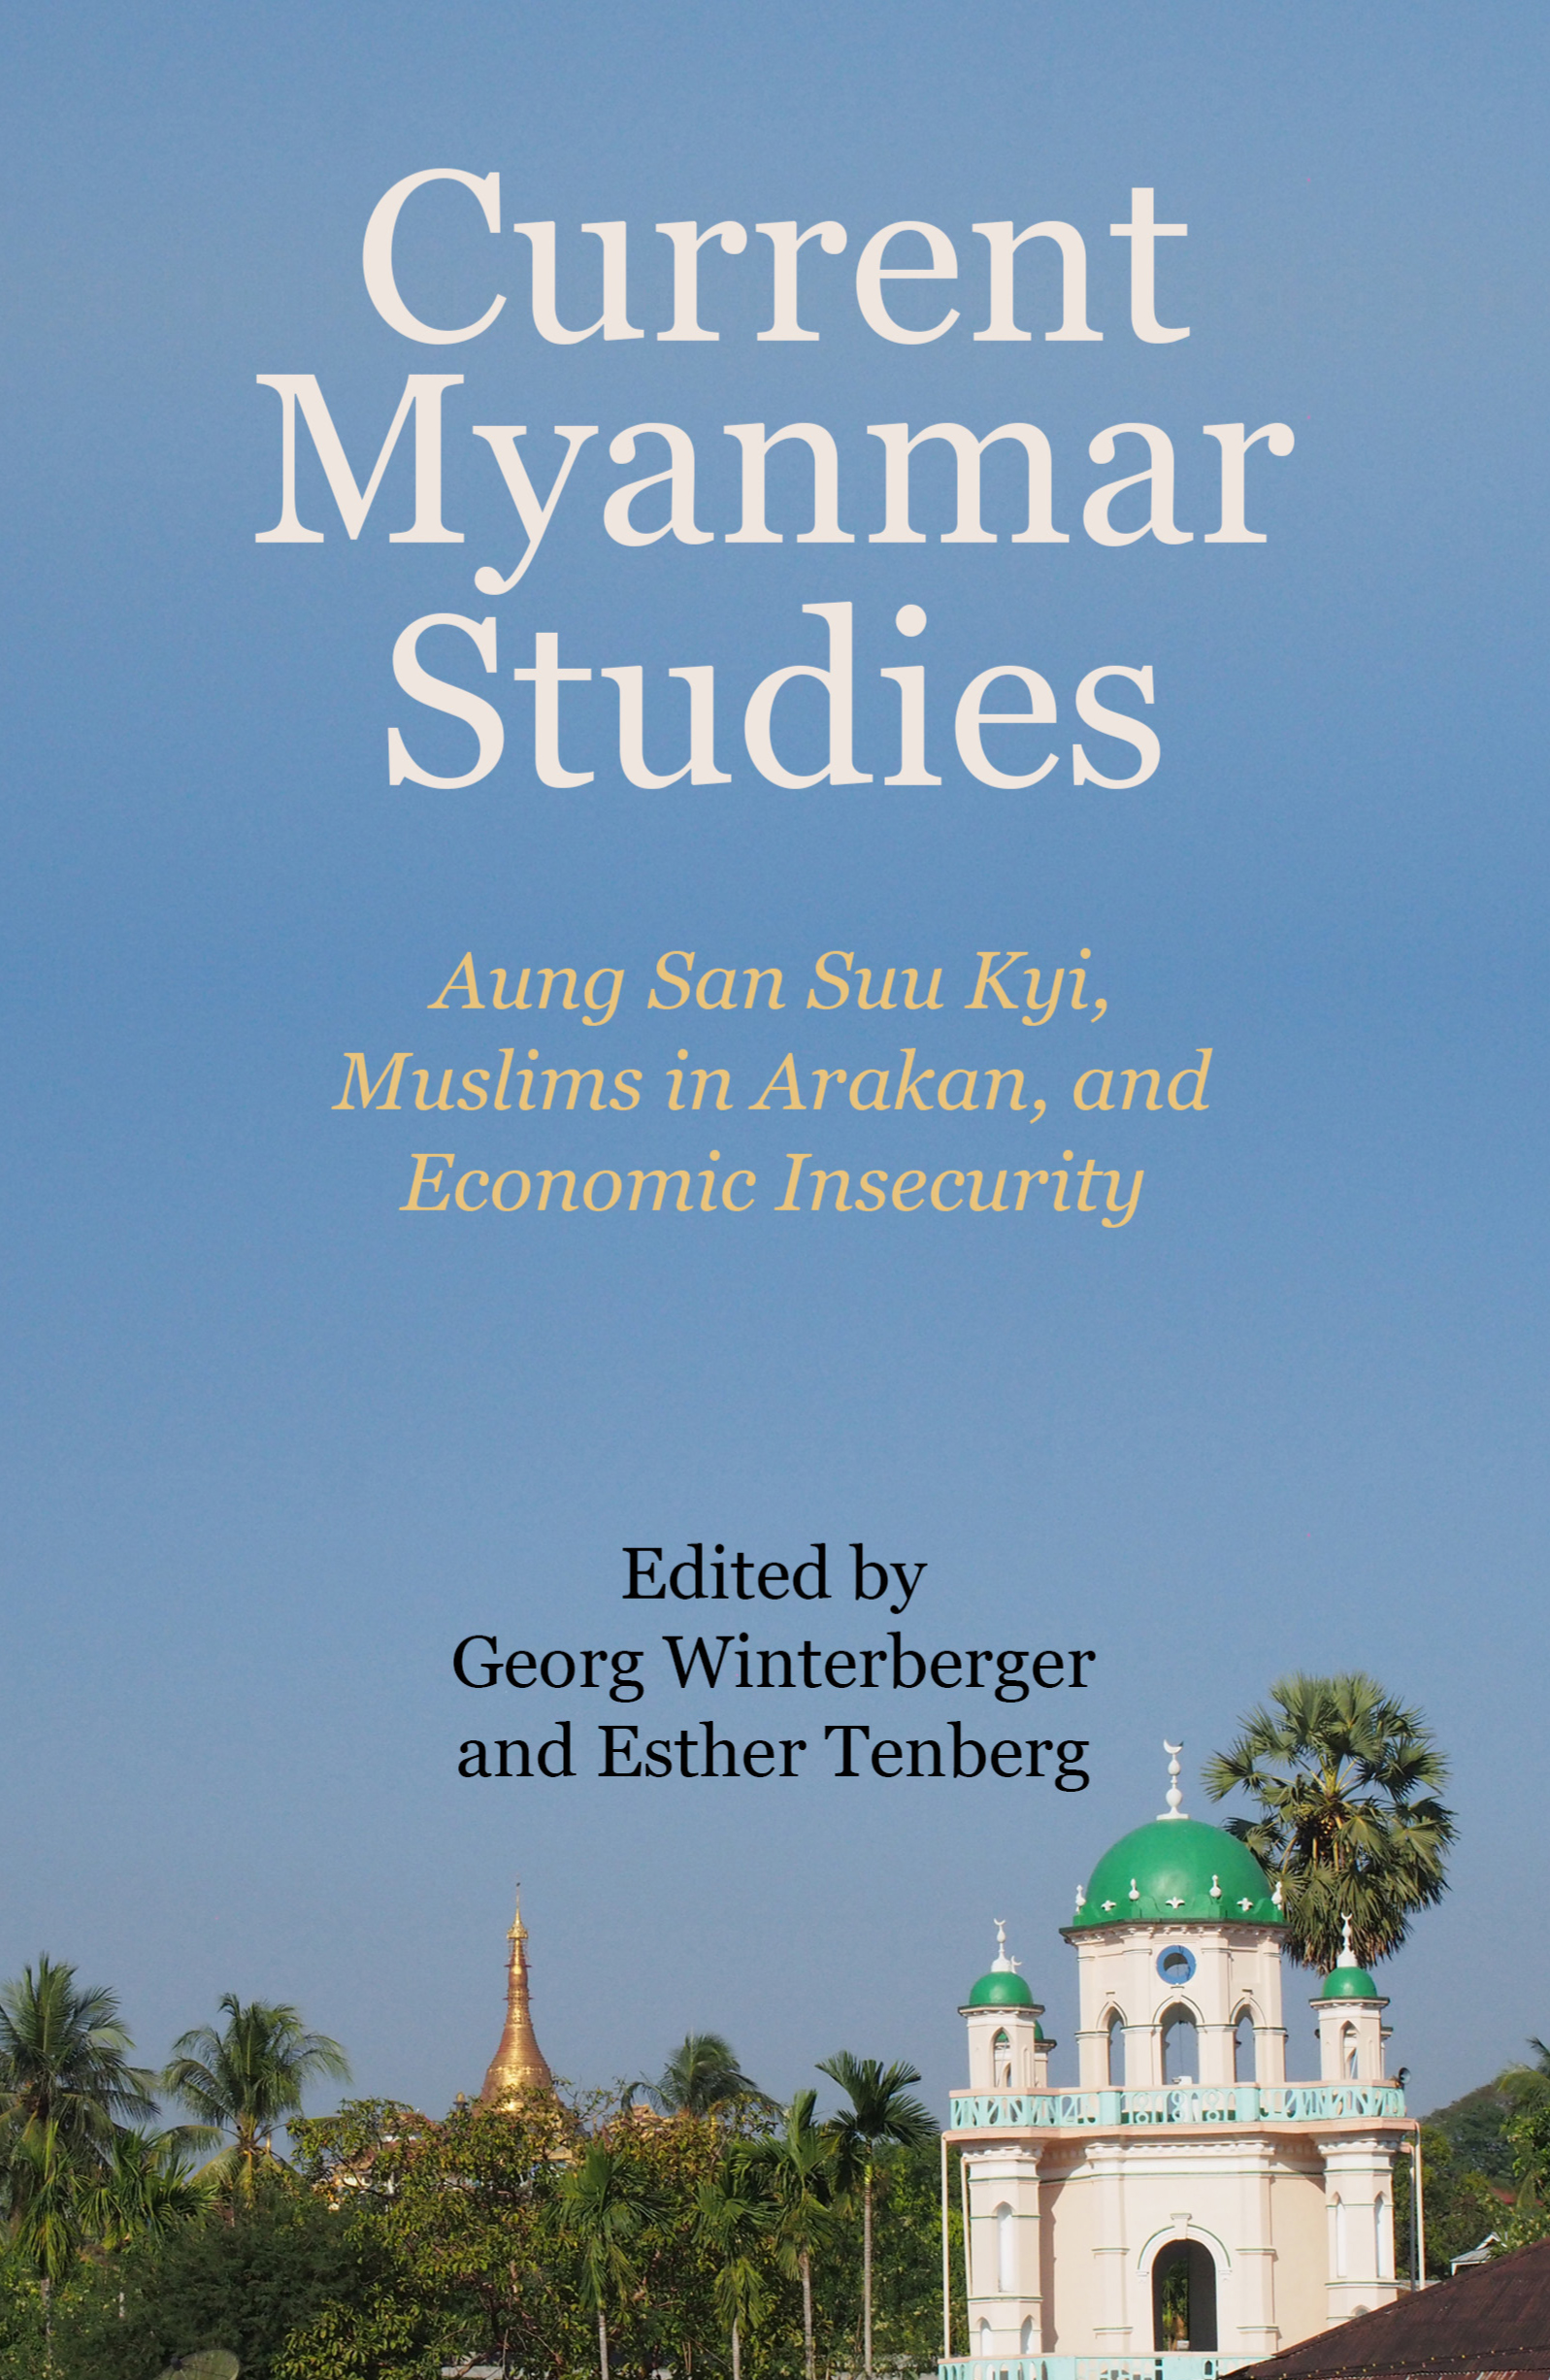 Current Myanmar Studies